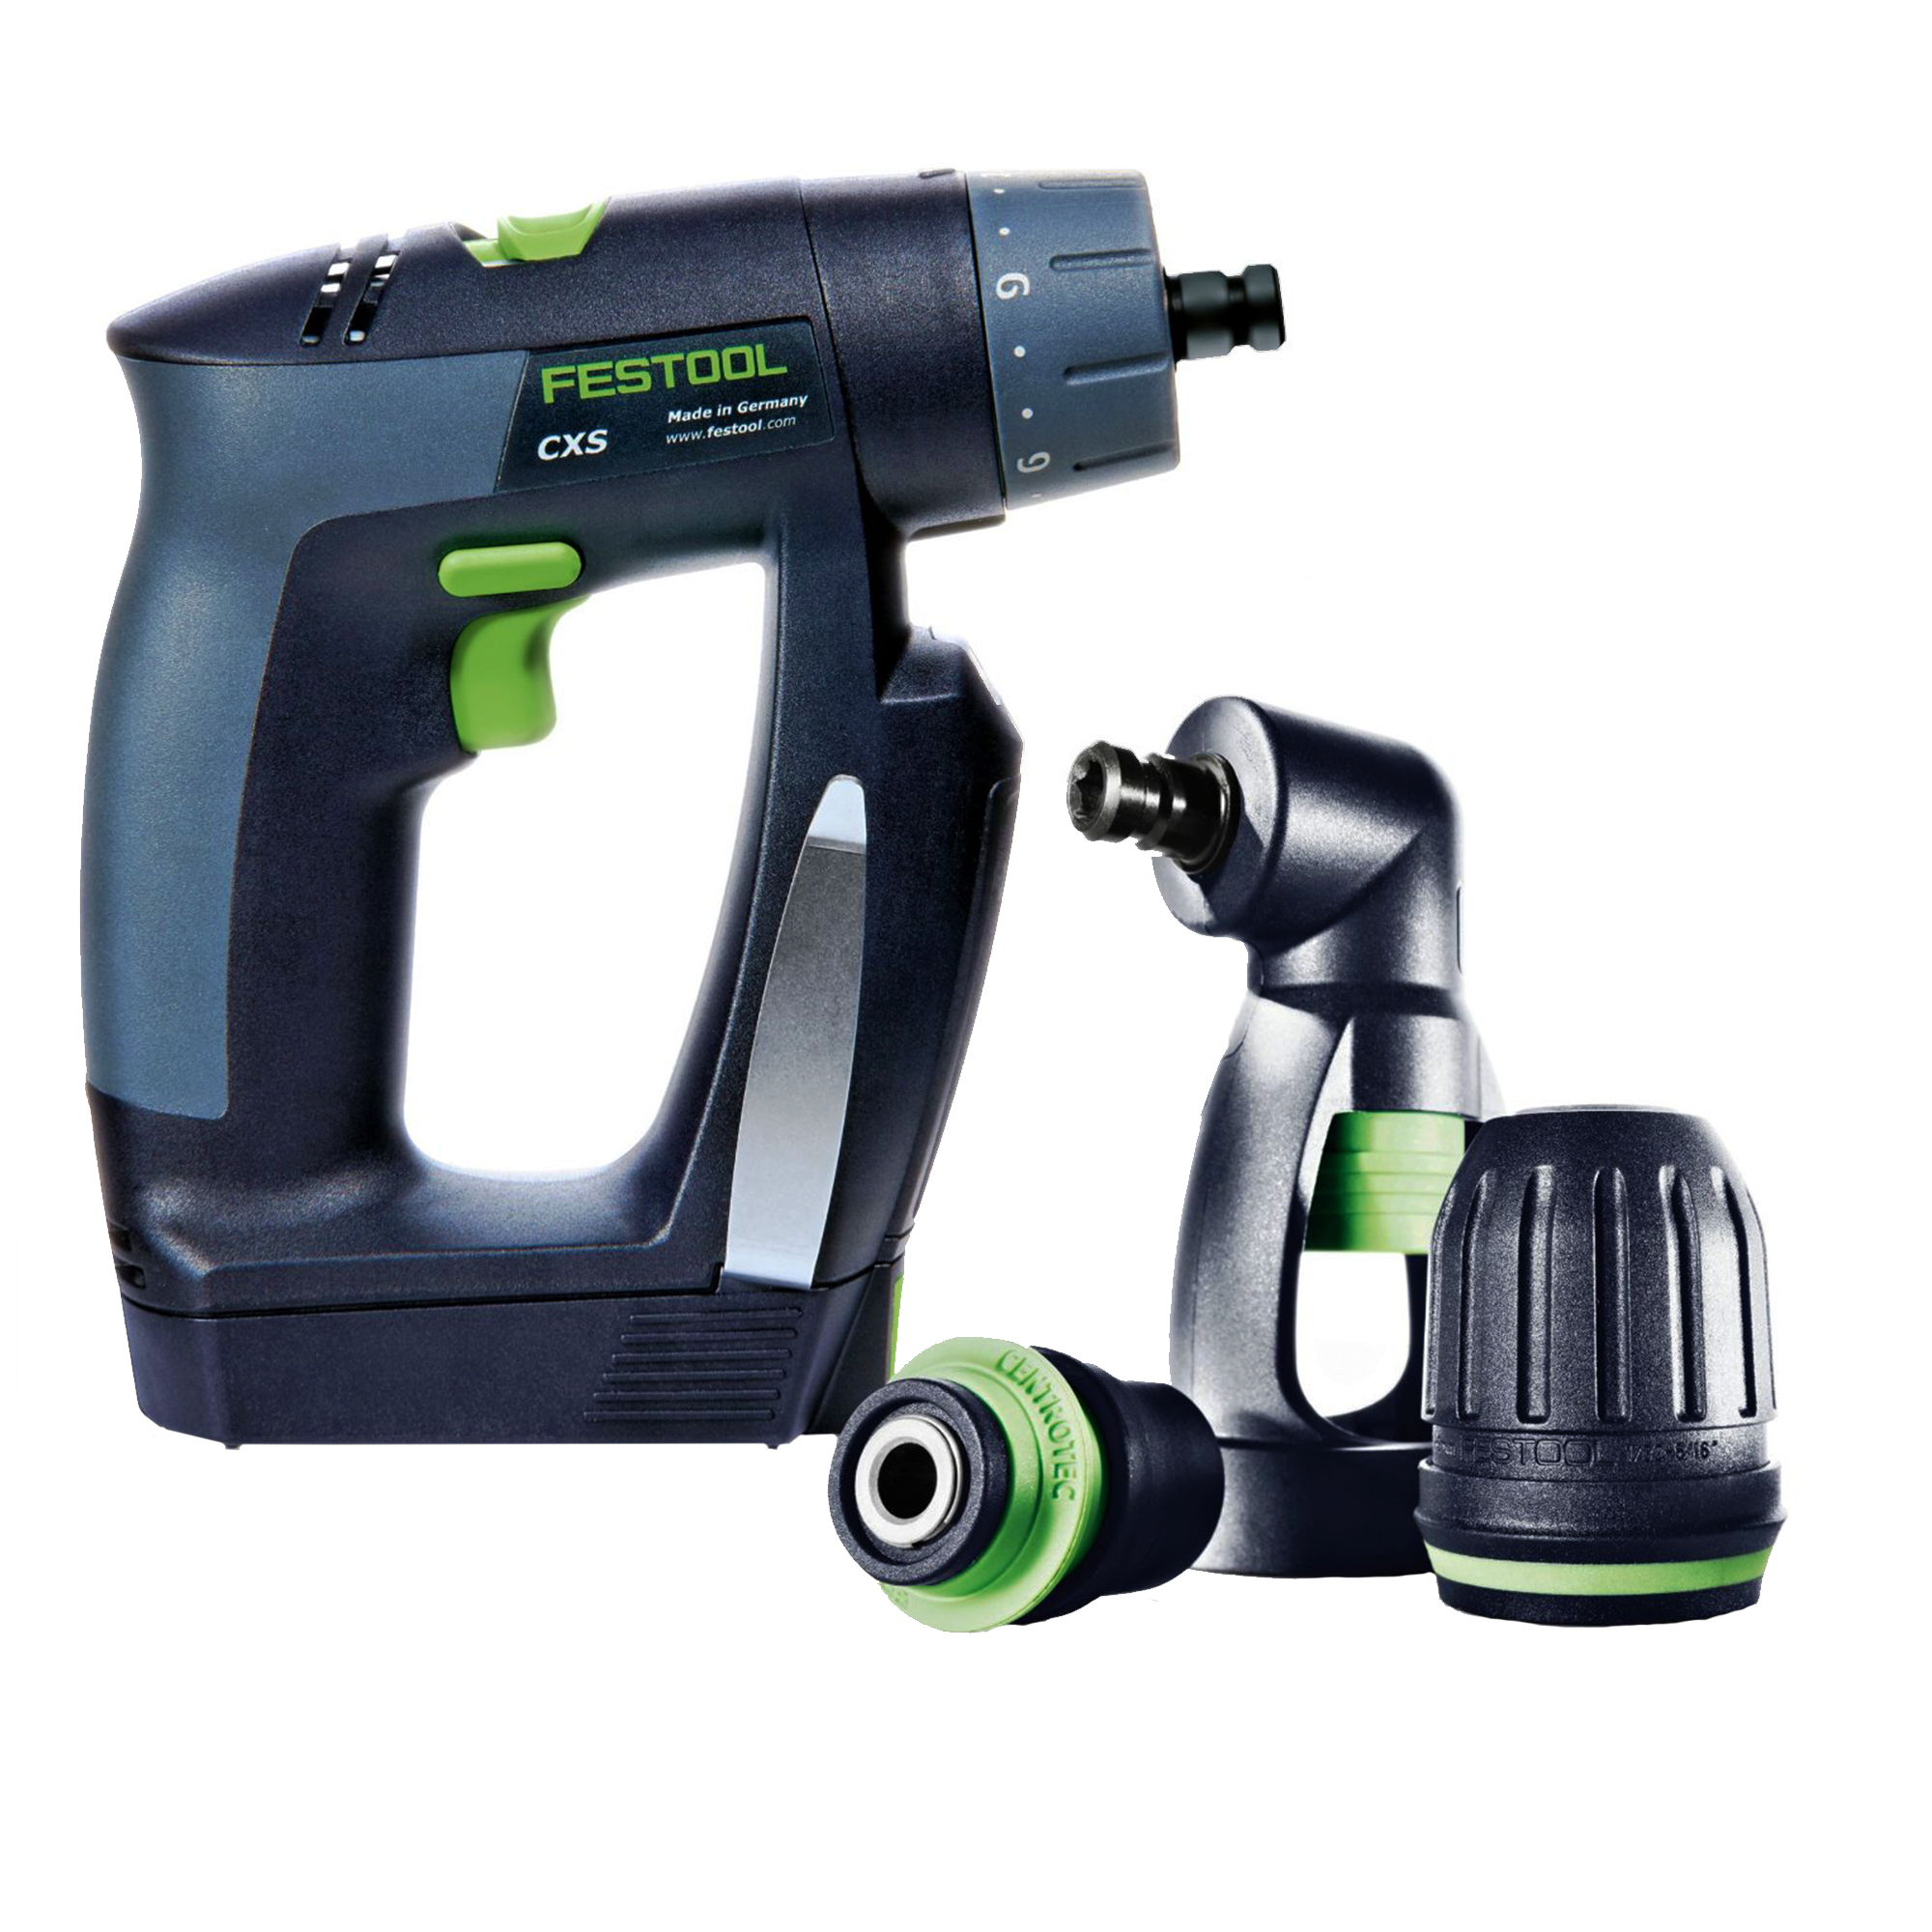 festool cxs li 2 6 set564533 festool cxs cordless li ion drill driver 2 6ah. Black Bedroom Furniture Sets. Home Design Ideas